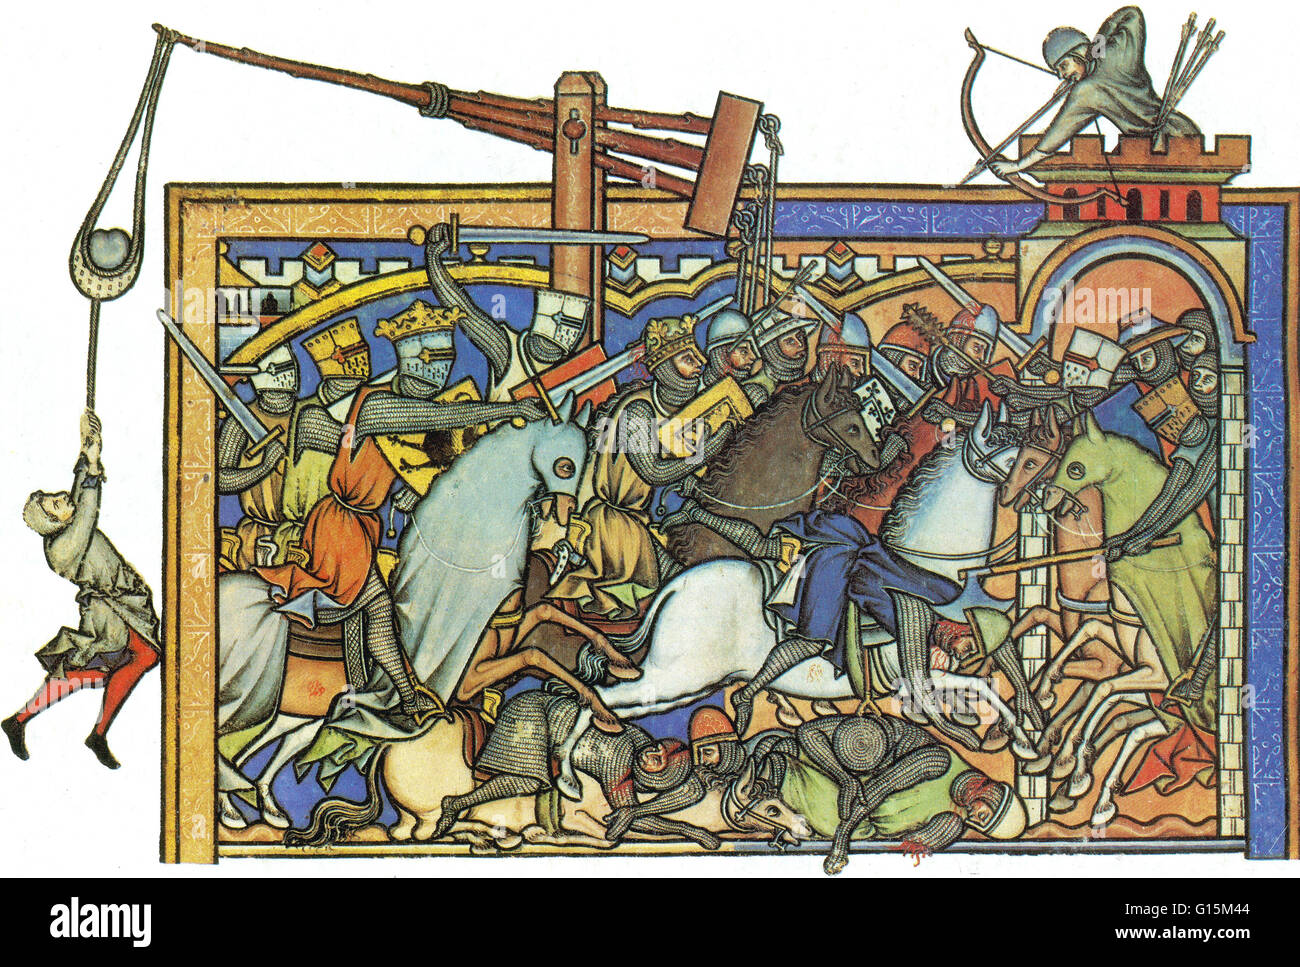 13th century miniature shows the weaponry used by the Knights Templar. Catapult (extreme left), battle-axe (center - Stock Image